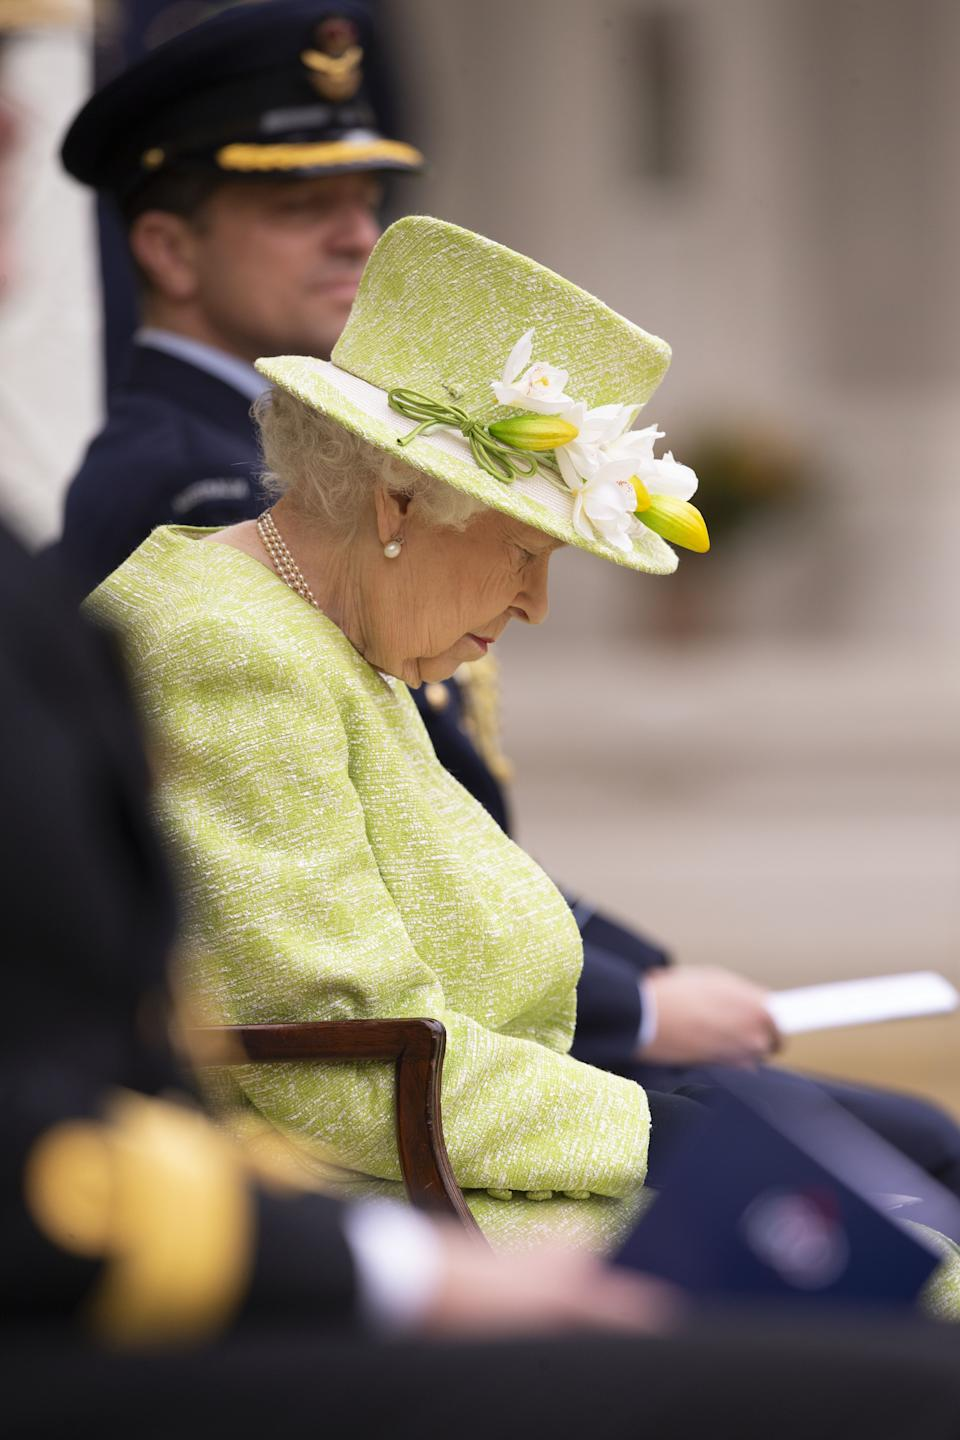 Queen Elizabeth II sits for a service to mark the Centenary of the Royal Australian Air Force at the CWGC Air Forces Memorial in Runnymede, Surrey. Picture date: Wednesday March 31, 2021.